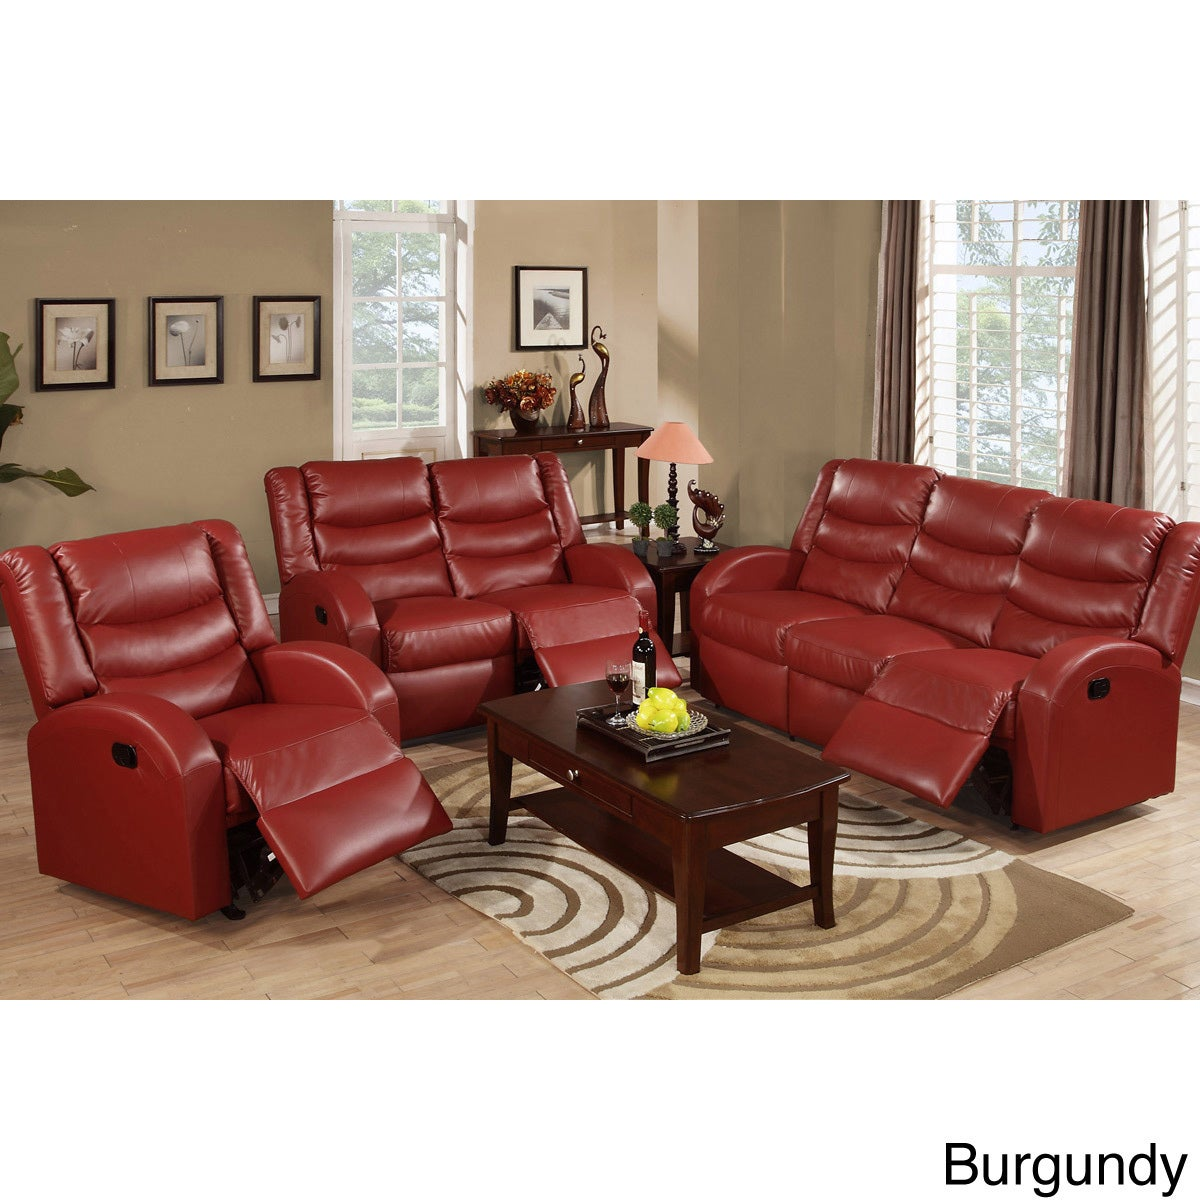 Rouen Bonded Leather Recliner Motion Living Room Set - Free ...